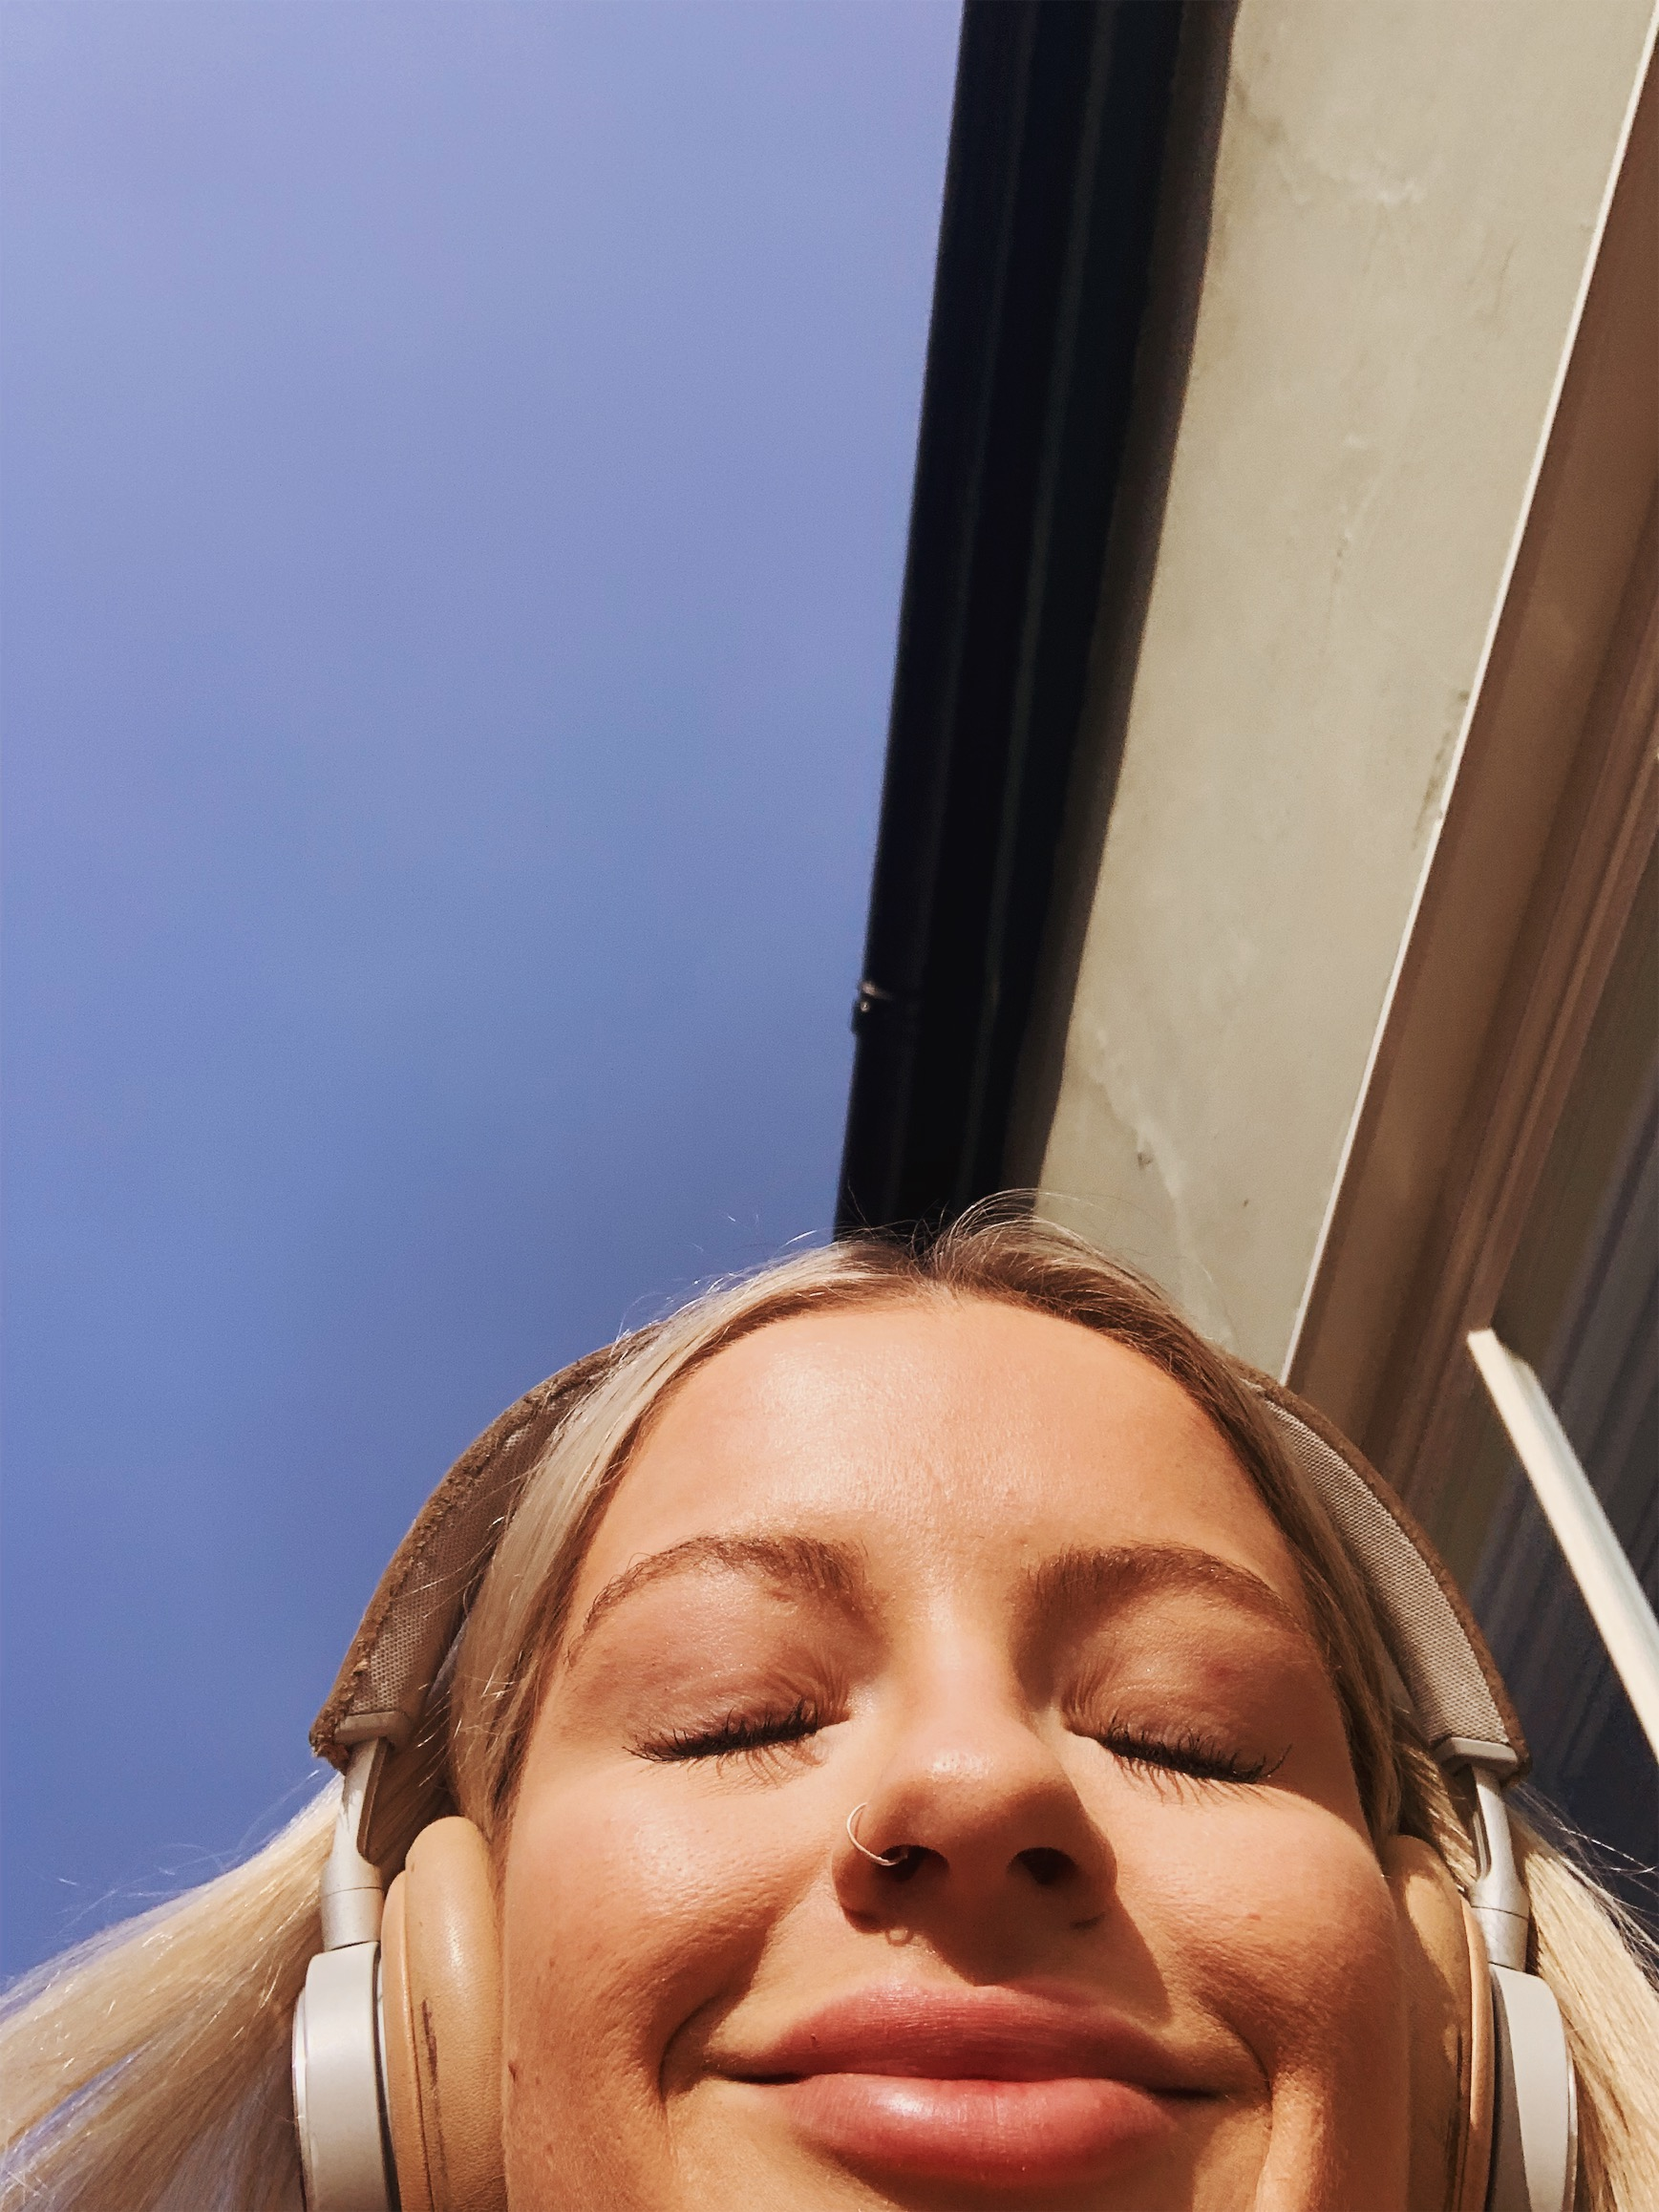 Selfie smiling in sun with headphones on